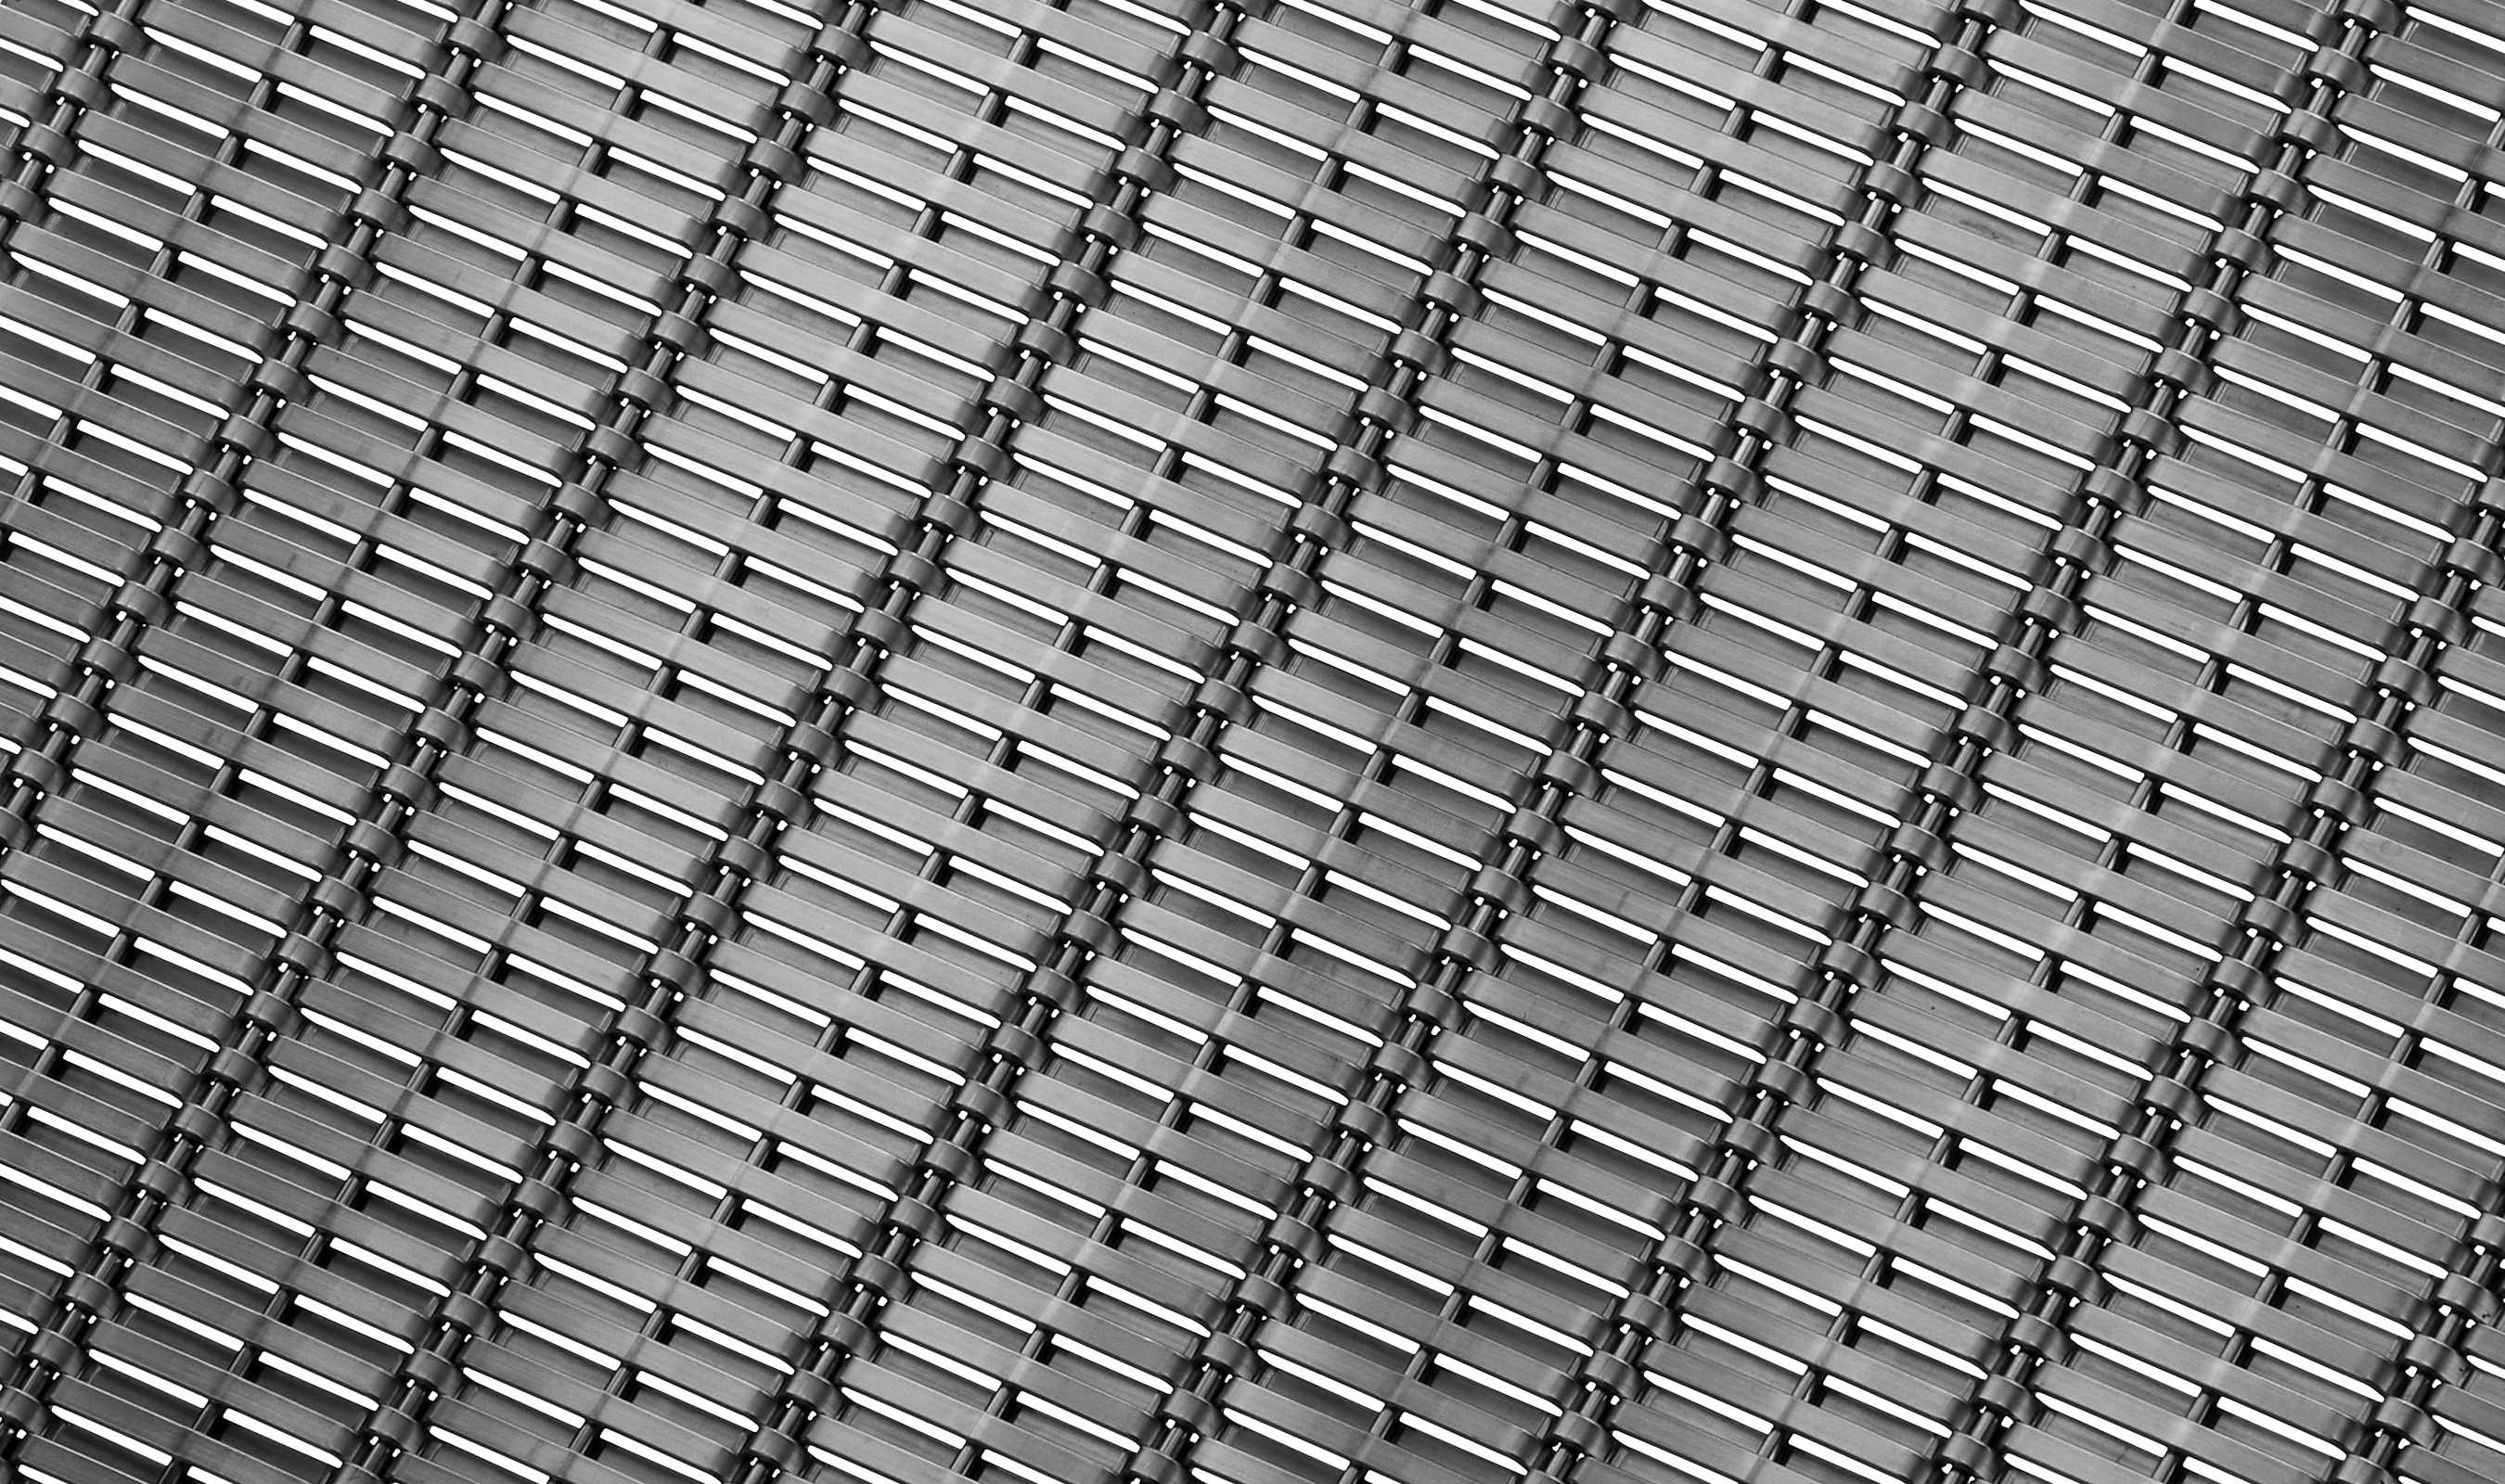 DS-53 architectural wire mesh